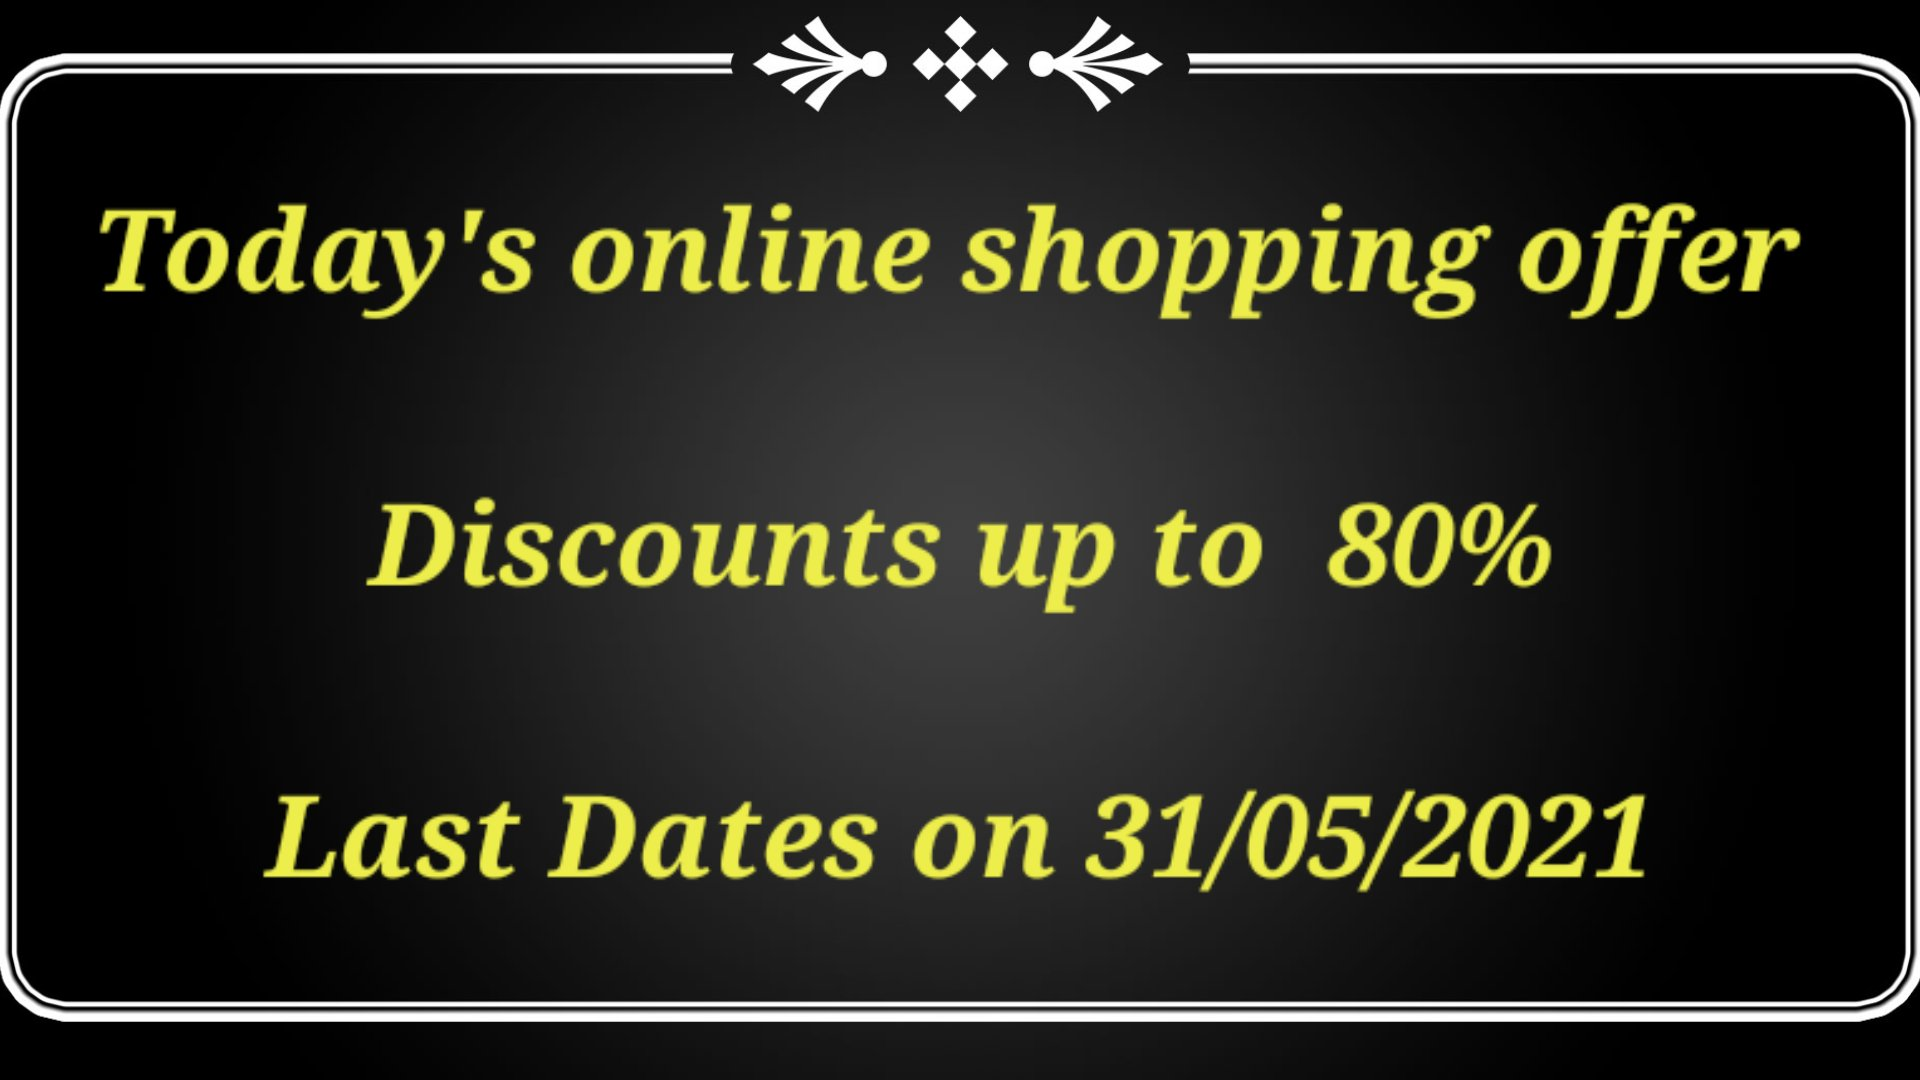 Discount and coupon code updates on 24th May 2021 , Online shopping offer